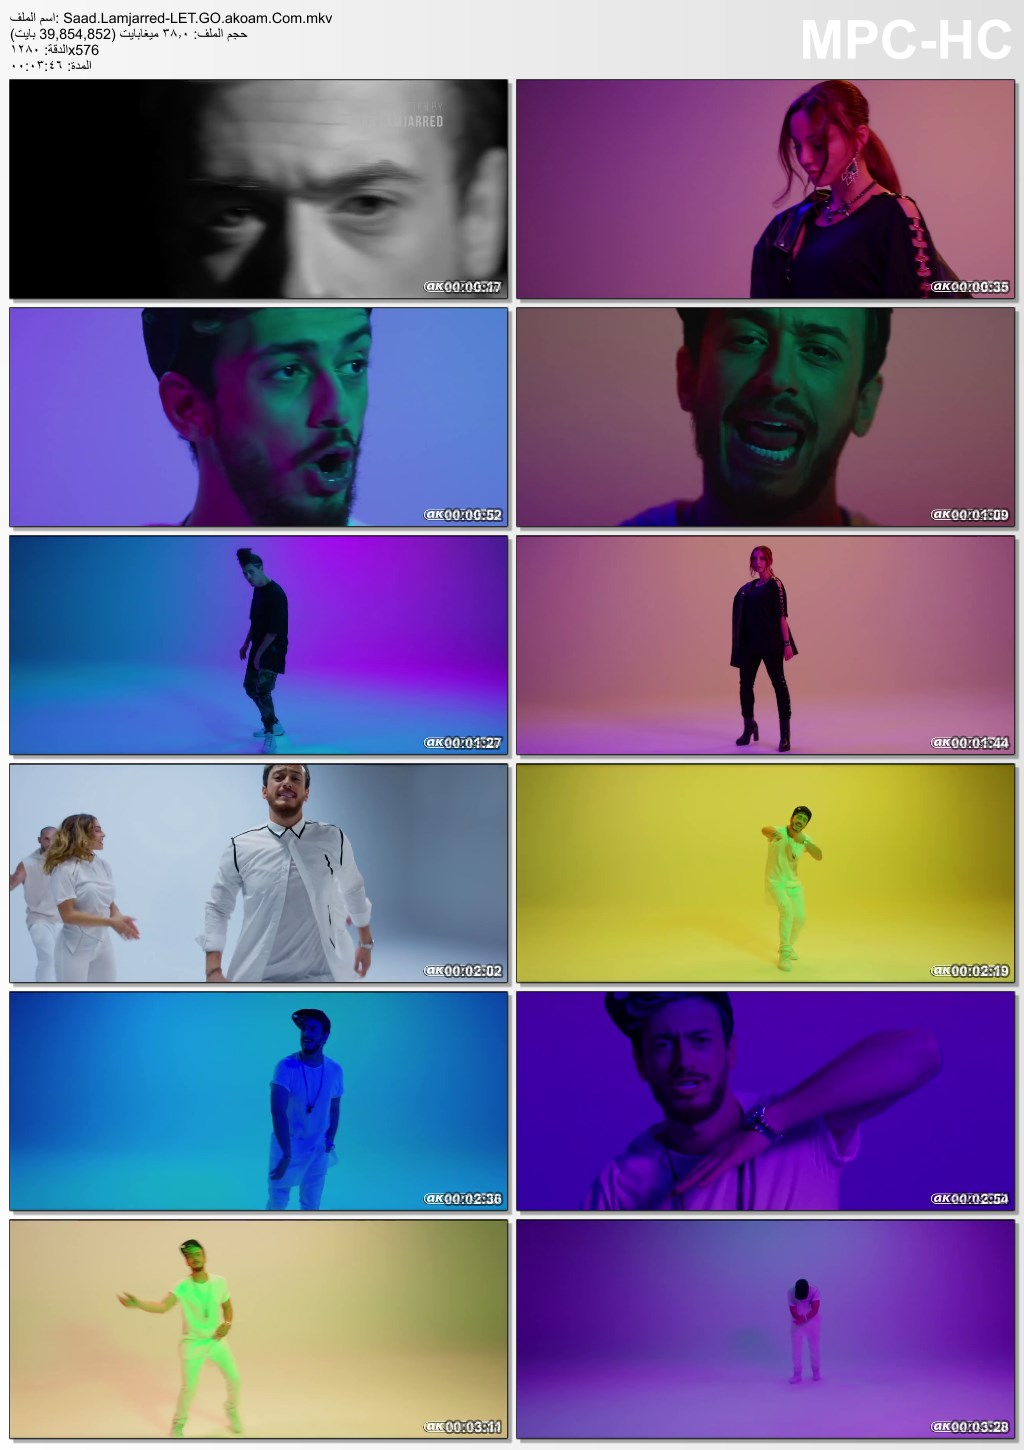 كليب LET GO,Saad Lamjarred,سعد لمجرد